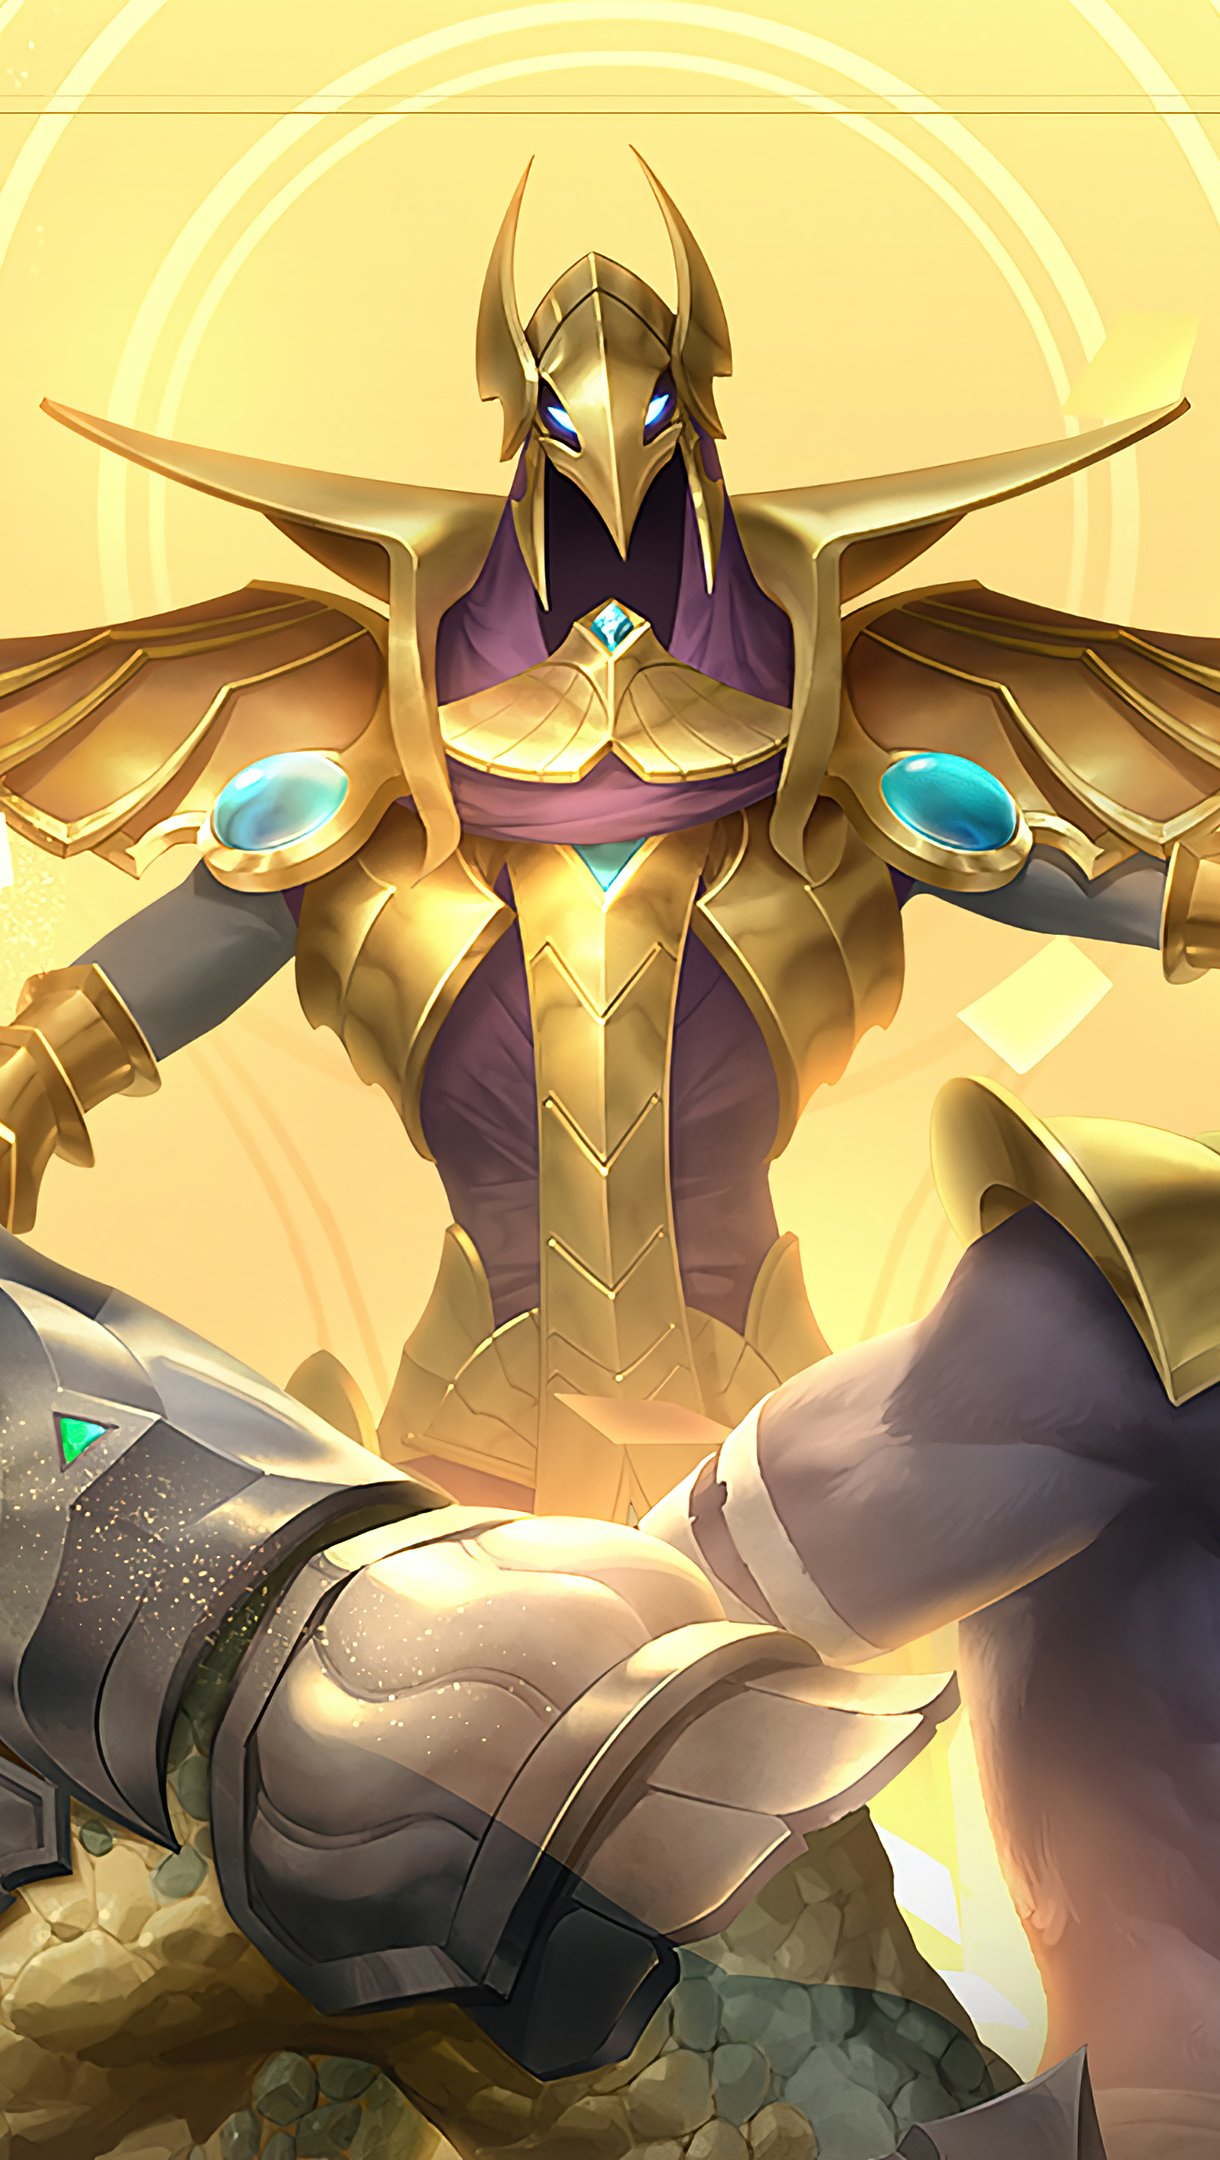 Fondos de pantalla Azir Renekton Nasus Legends of Runeterra Vertical